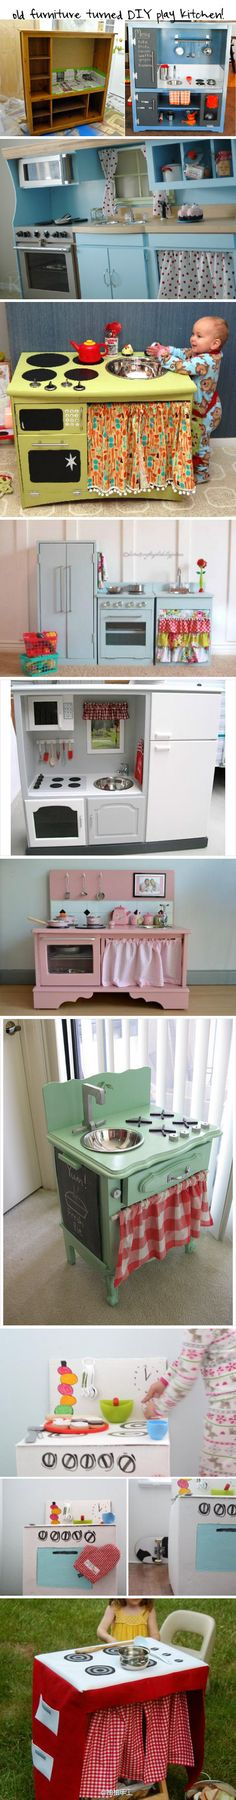 Old furniture turned DIY play kitchen...maybe I can get Mike to do this for my classroom?!